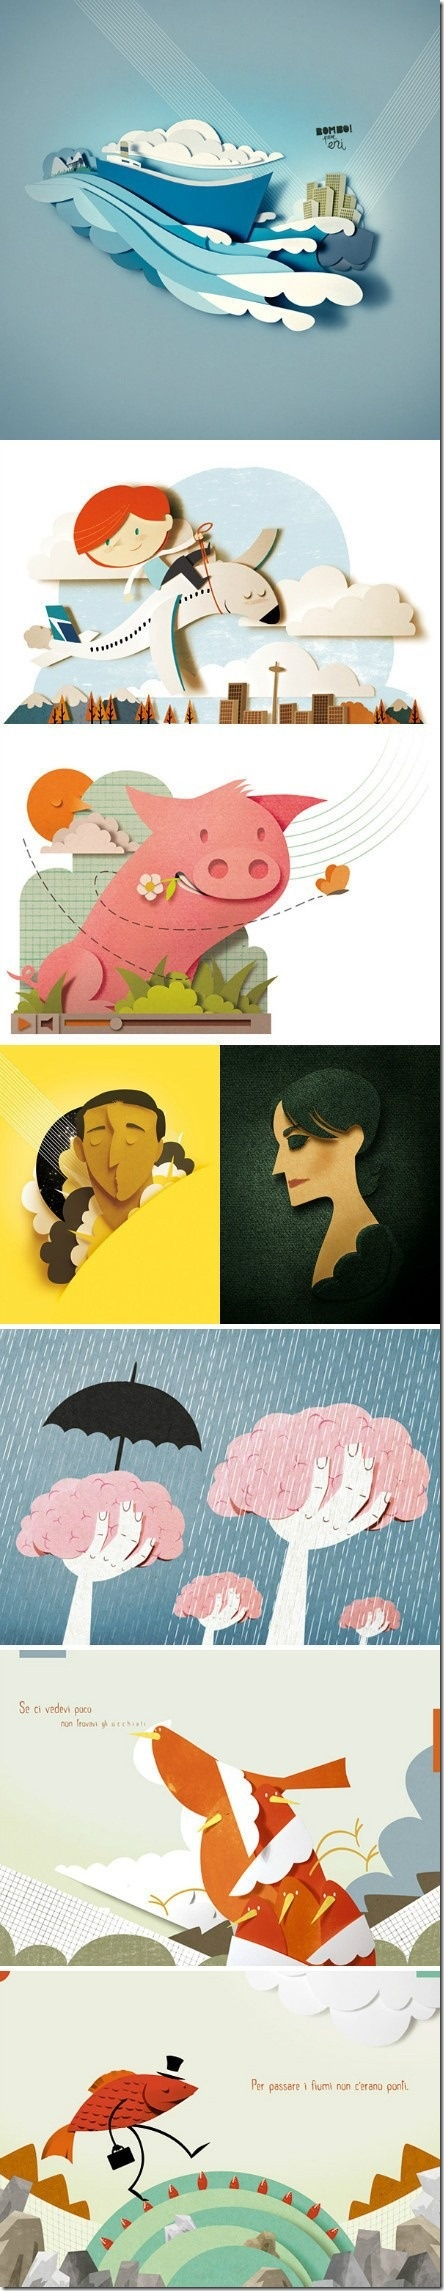 collection of paper art